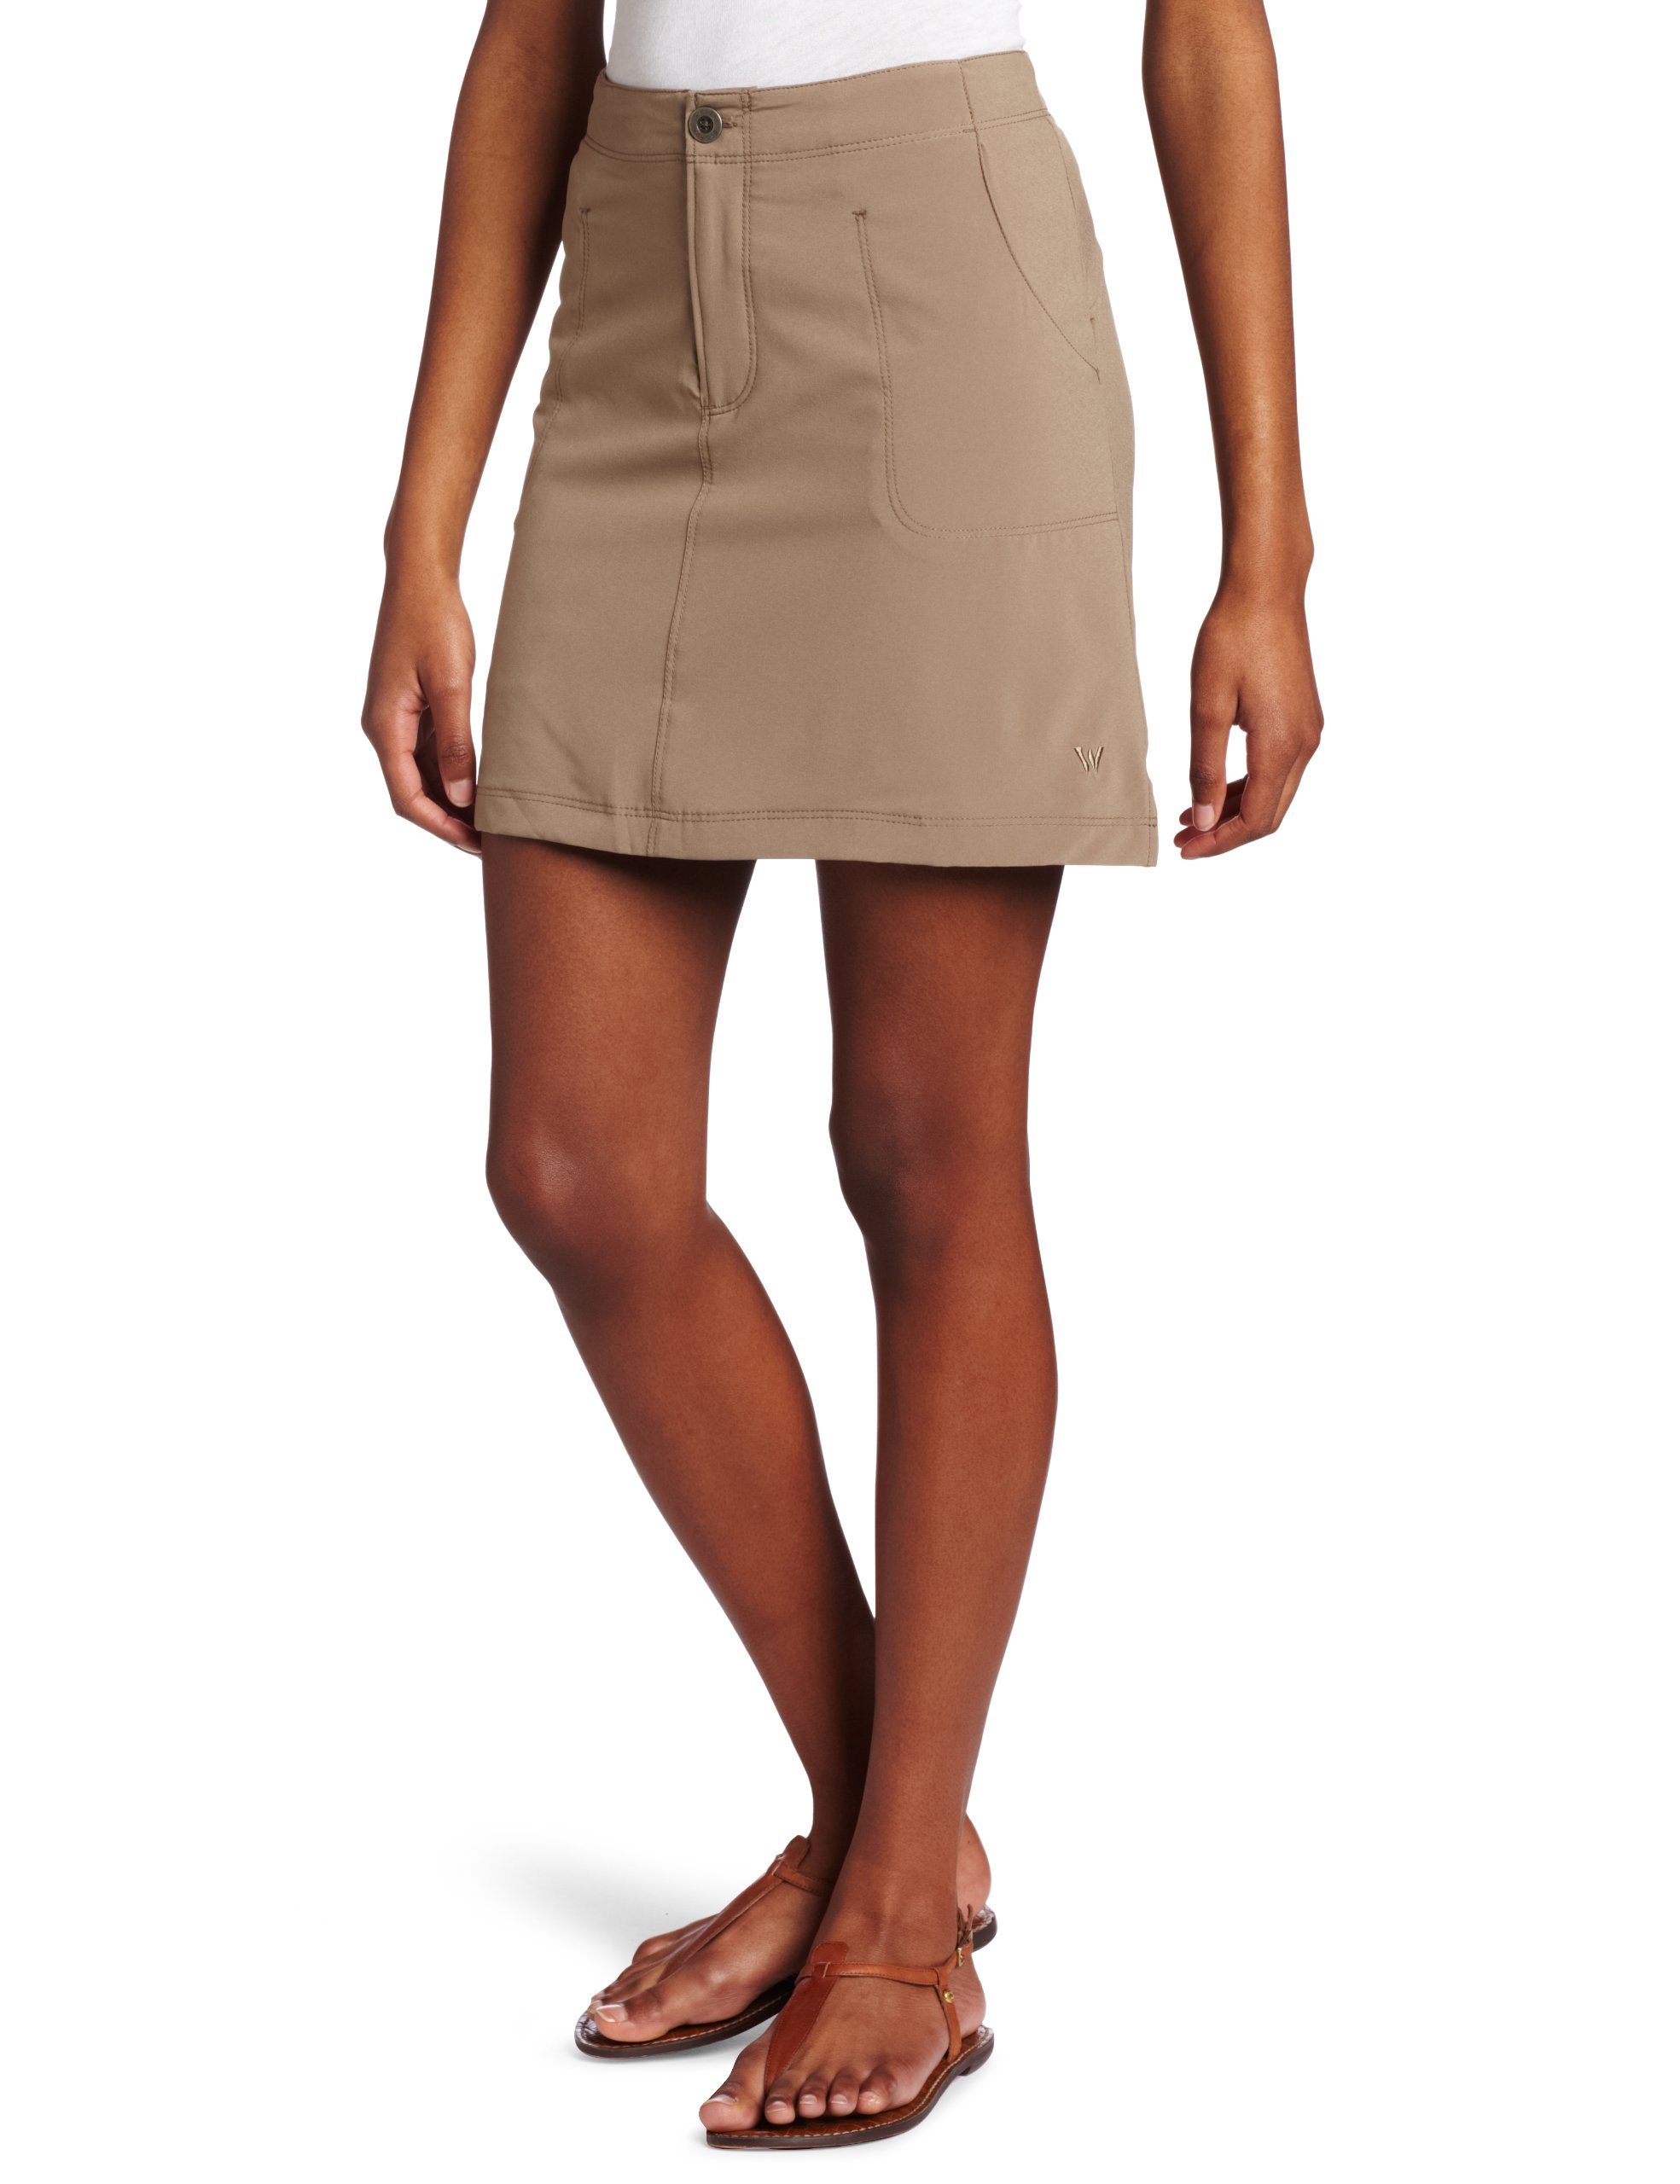 White Sierra Women's West Loop Trail Skort, X-Large, Bark